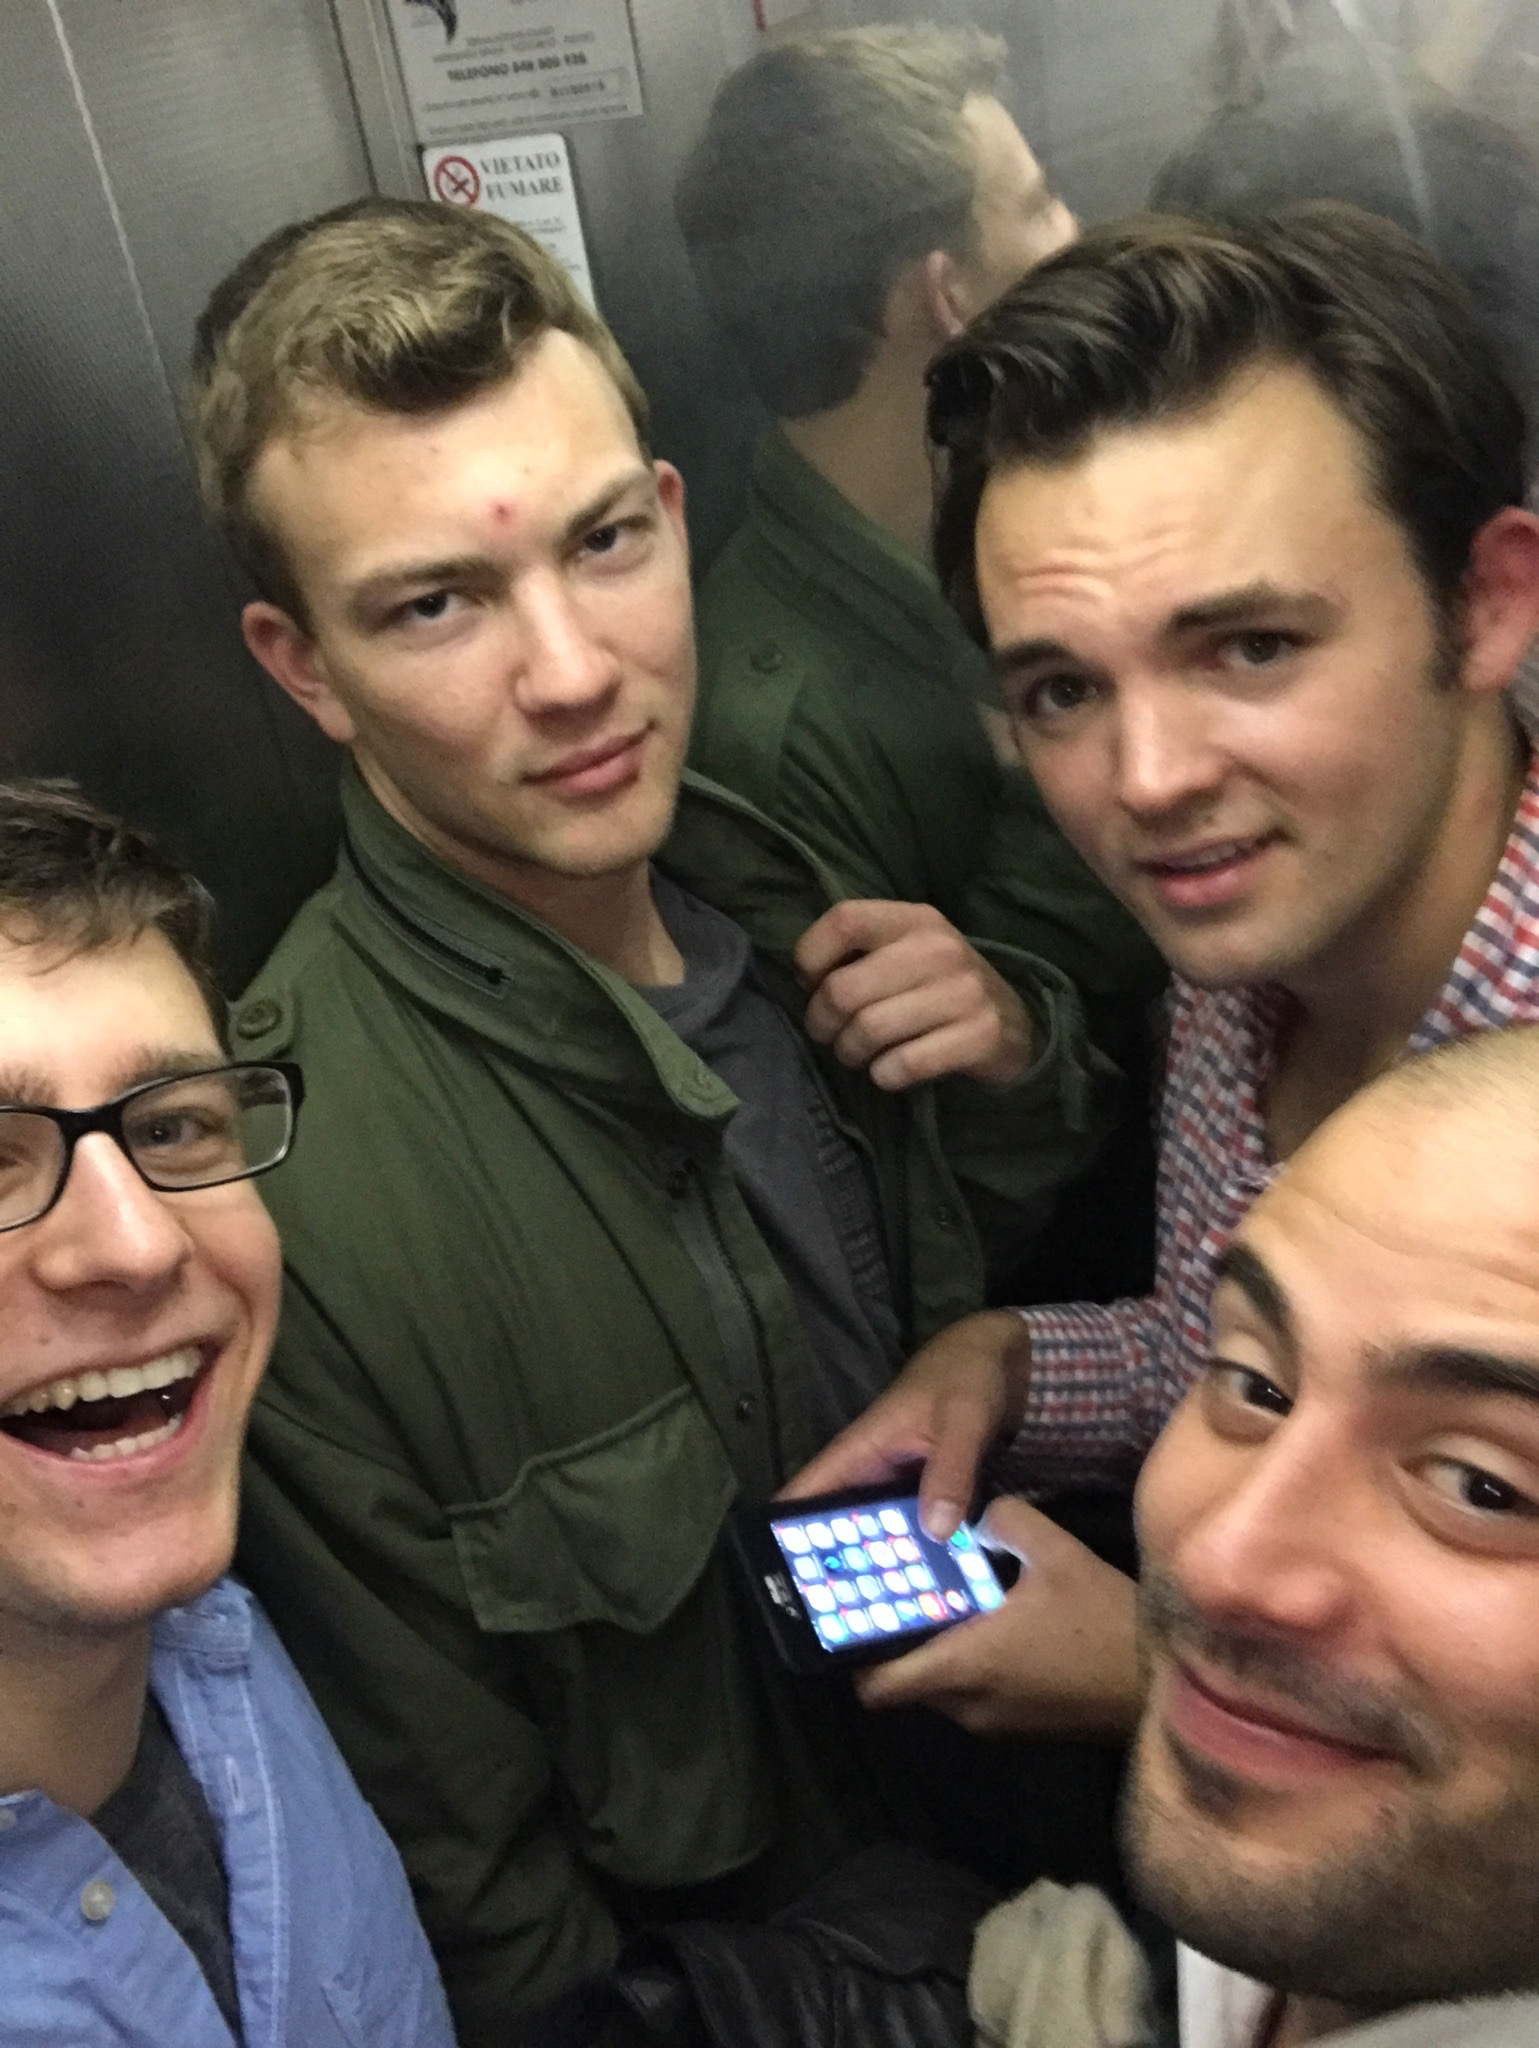 A happy group in the elevator